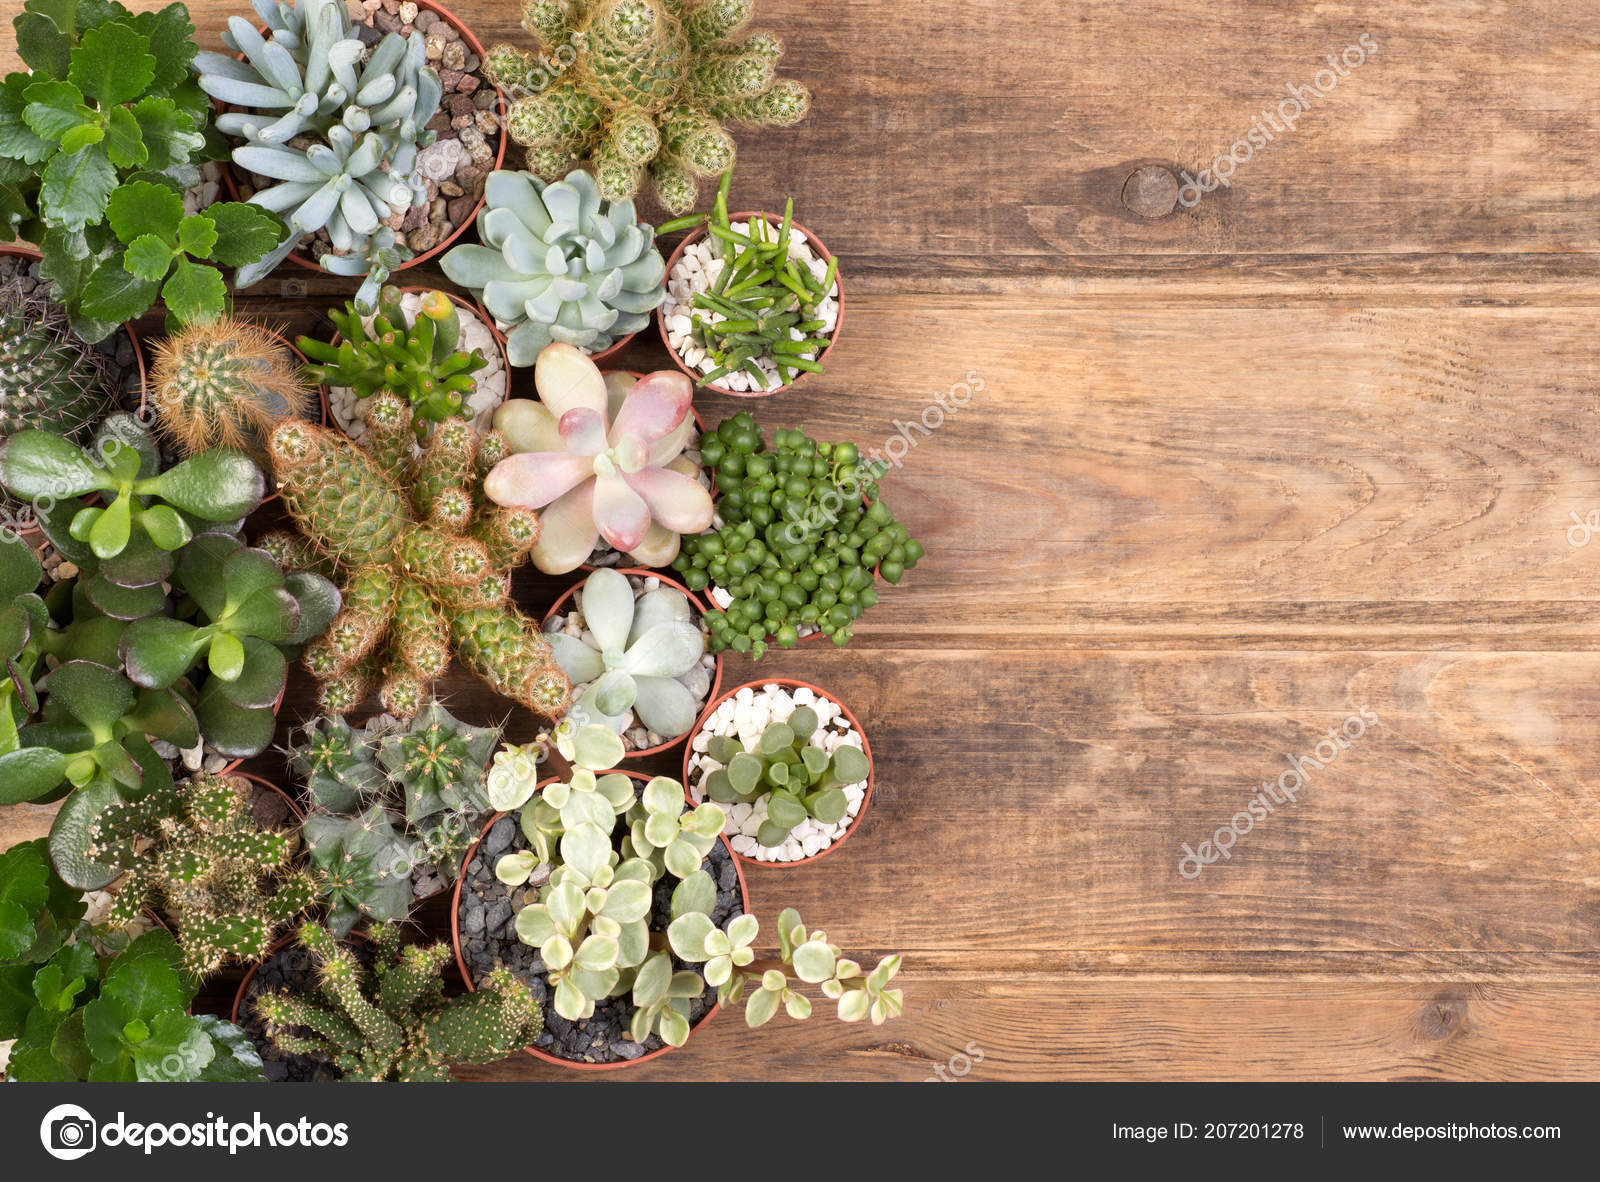 Cute Succulent Plants Wooden Background Copy Space Top View Stock Photo Image By C Photkas 207201278